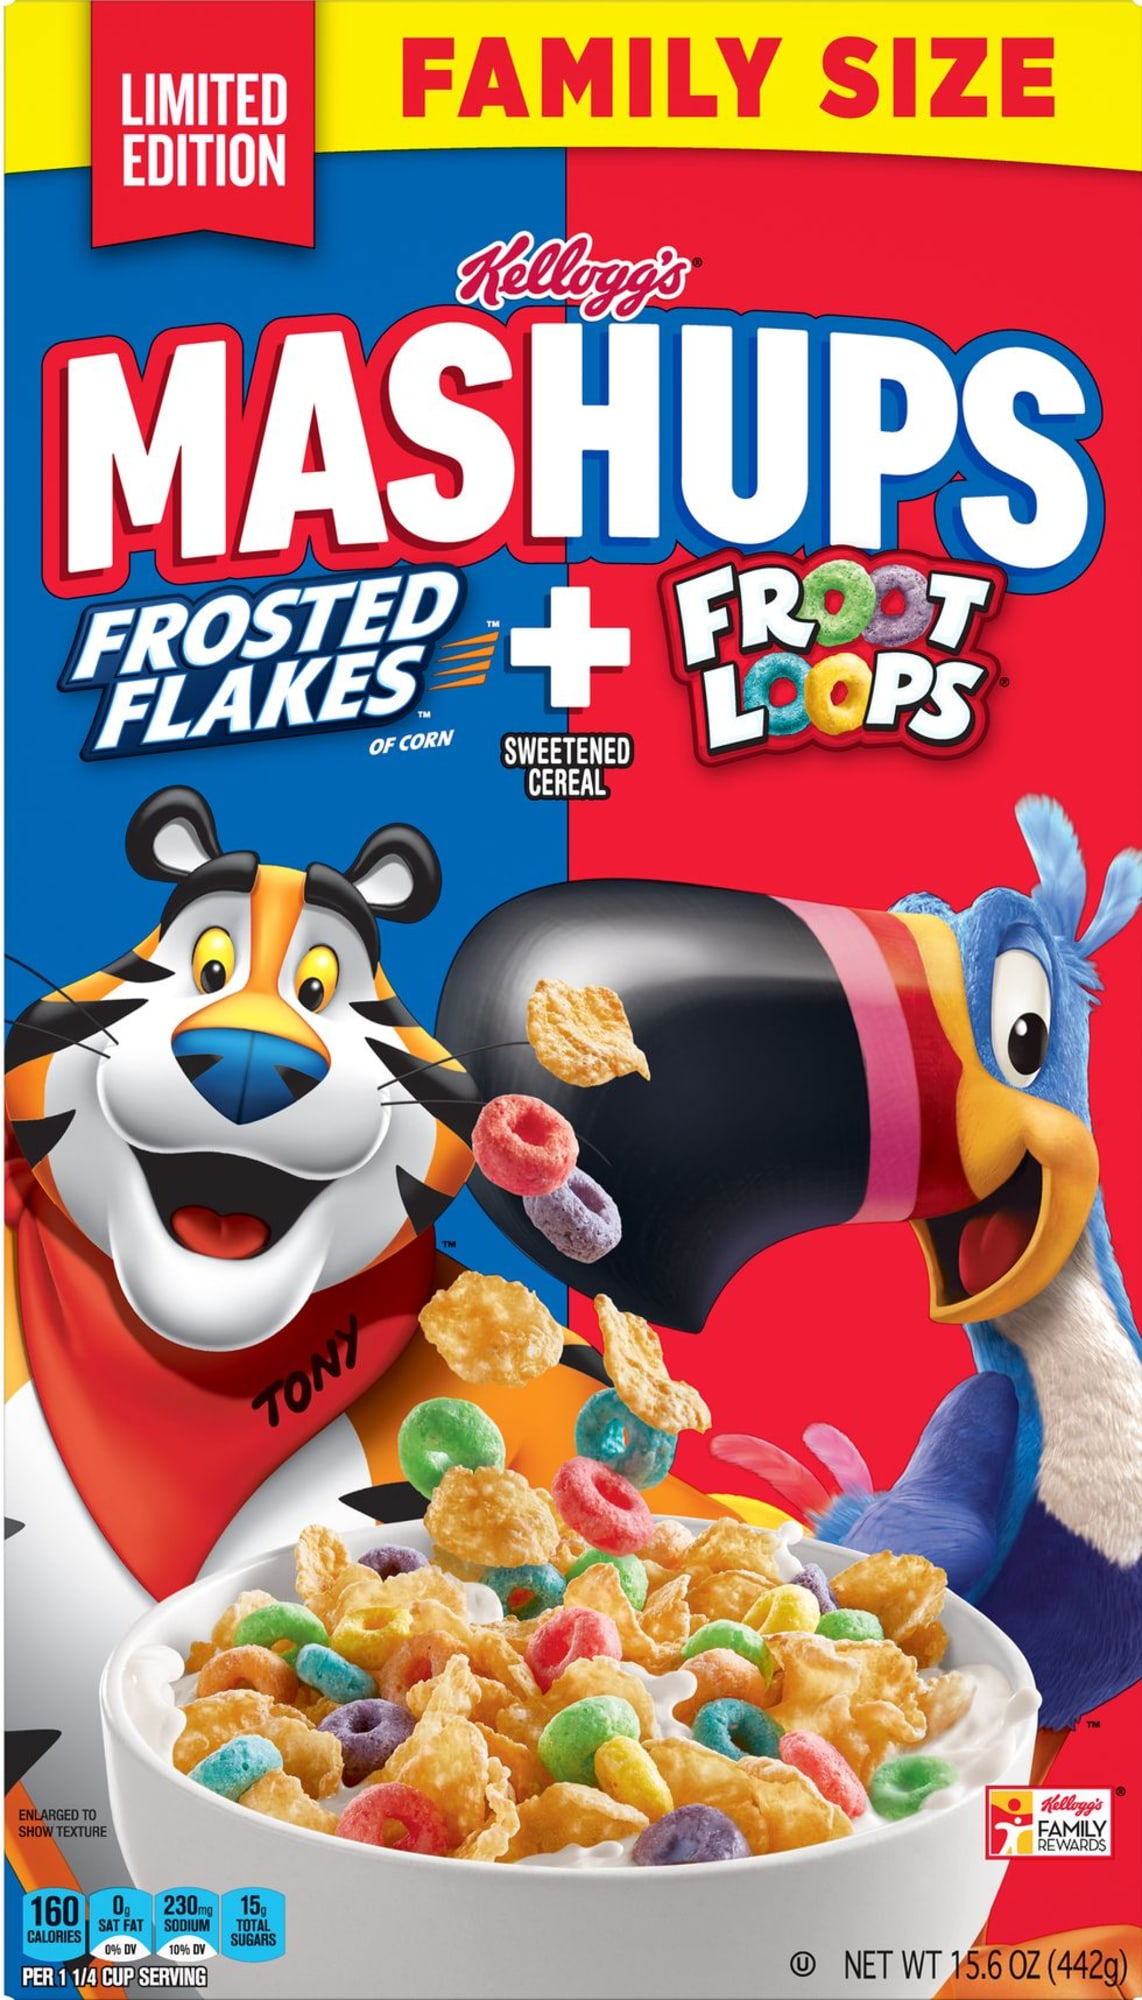 Kellogg's new Frosted Flakes and Froot Loops Mashups cereal is our childhood dream